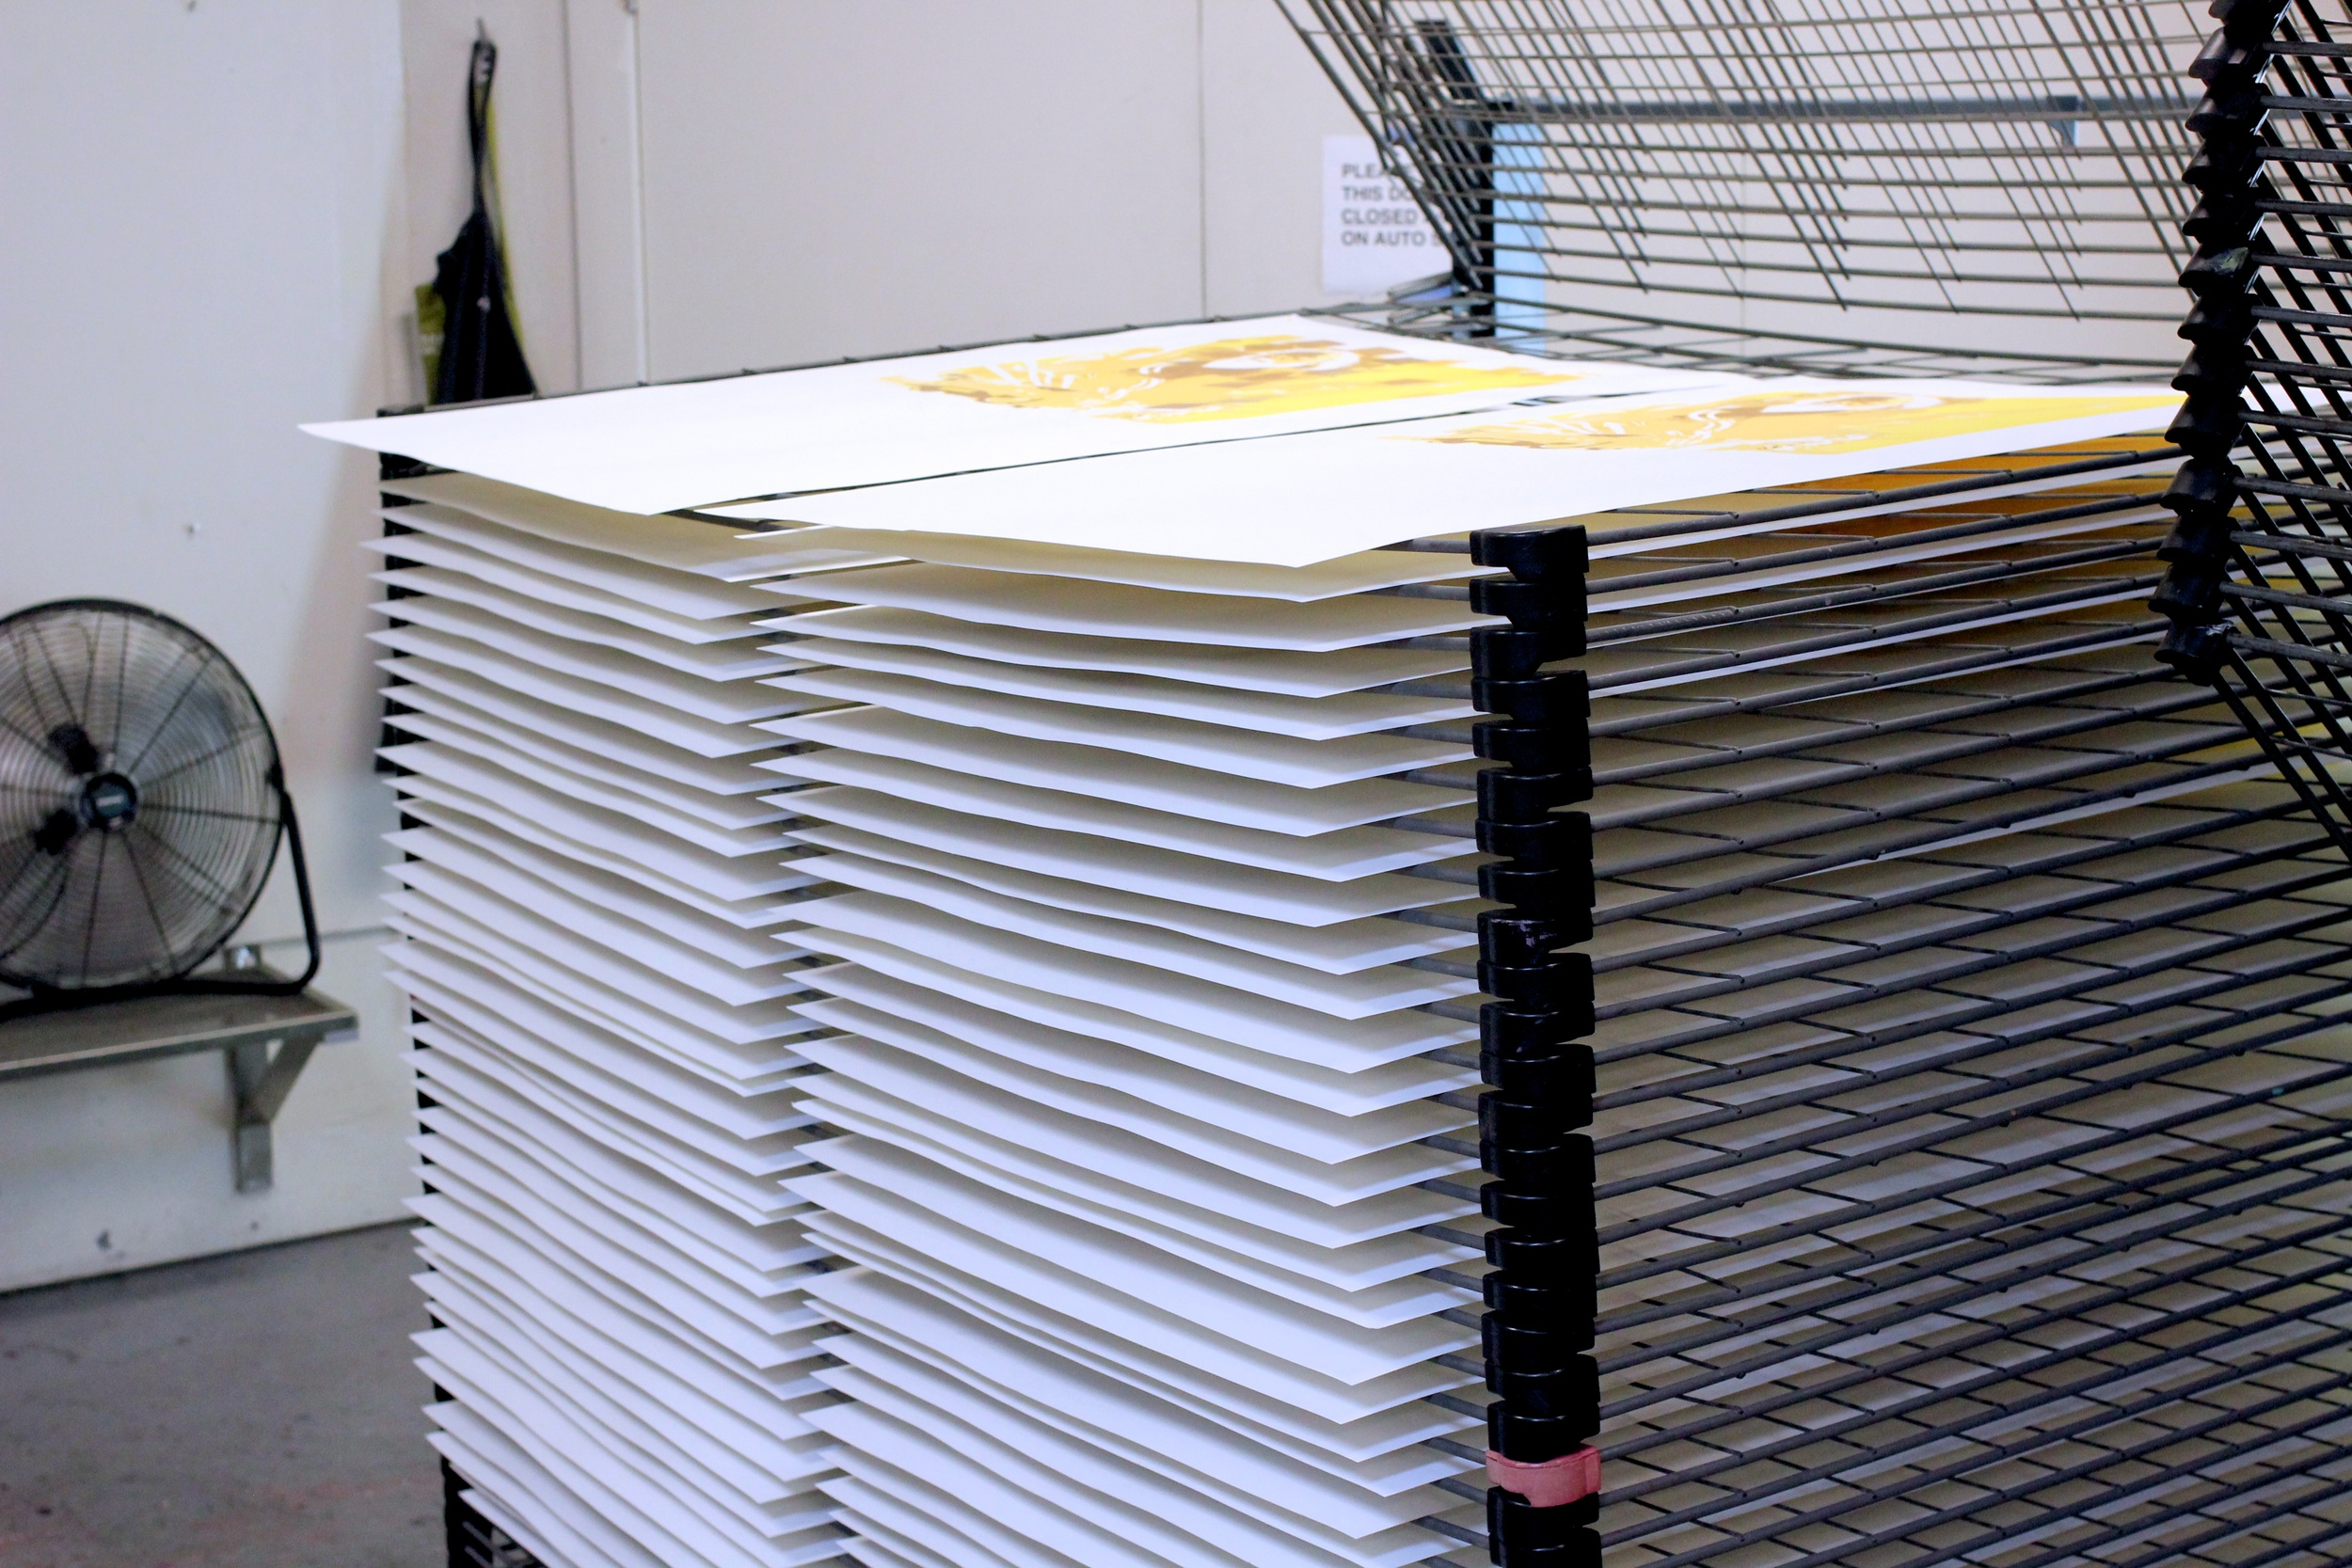 Prints drying in stacks.